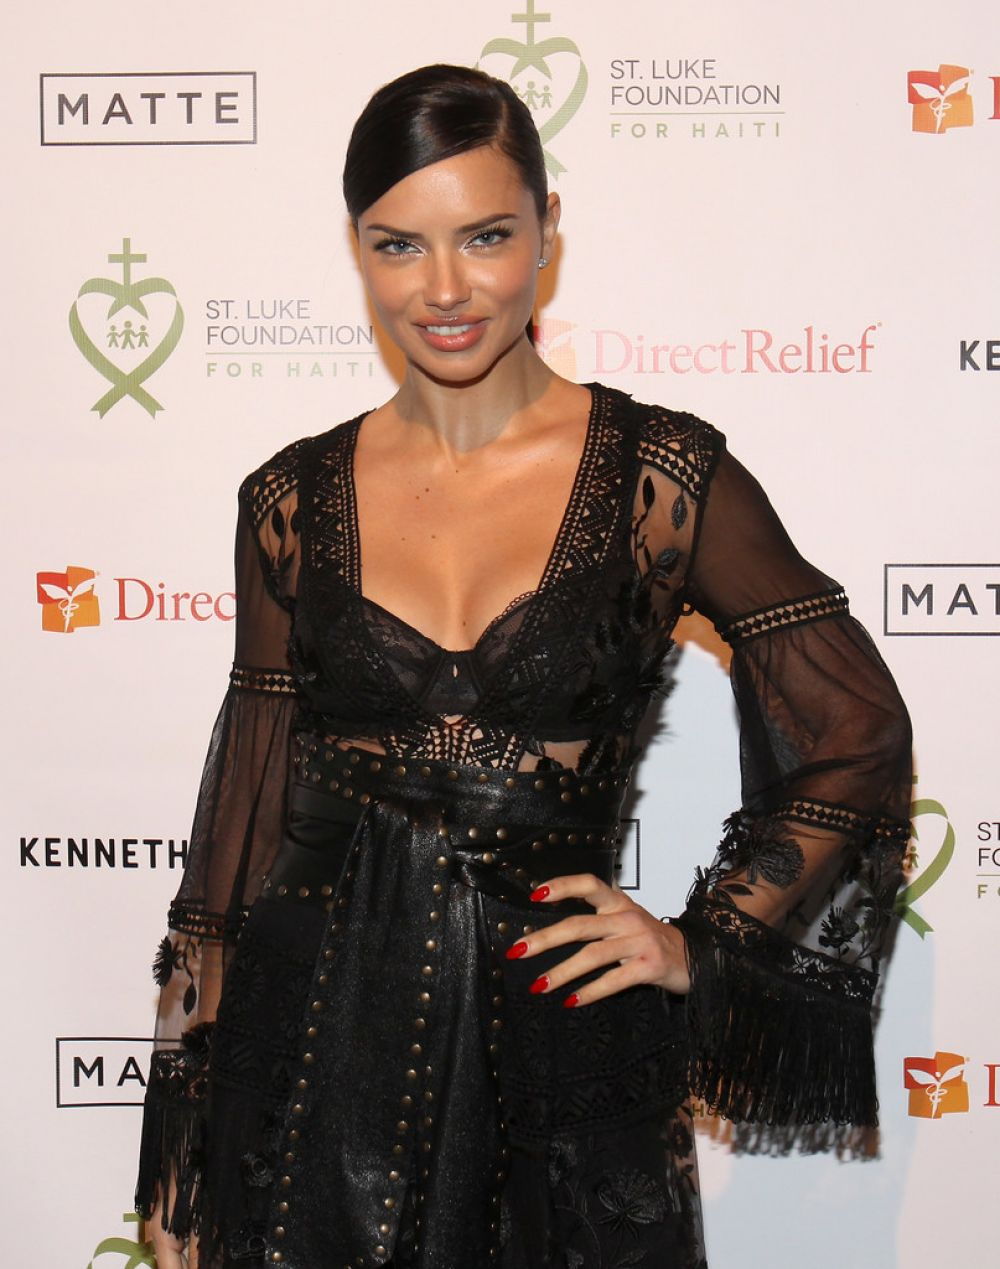 ADRIANA LIMA at 2017 St. Luke Foundation for Haiti Benefit in New York 01/10/2017